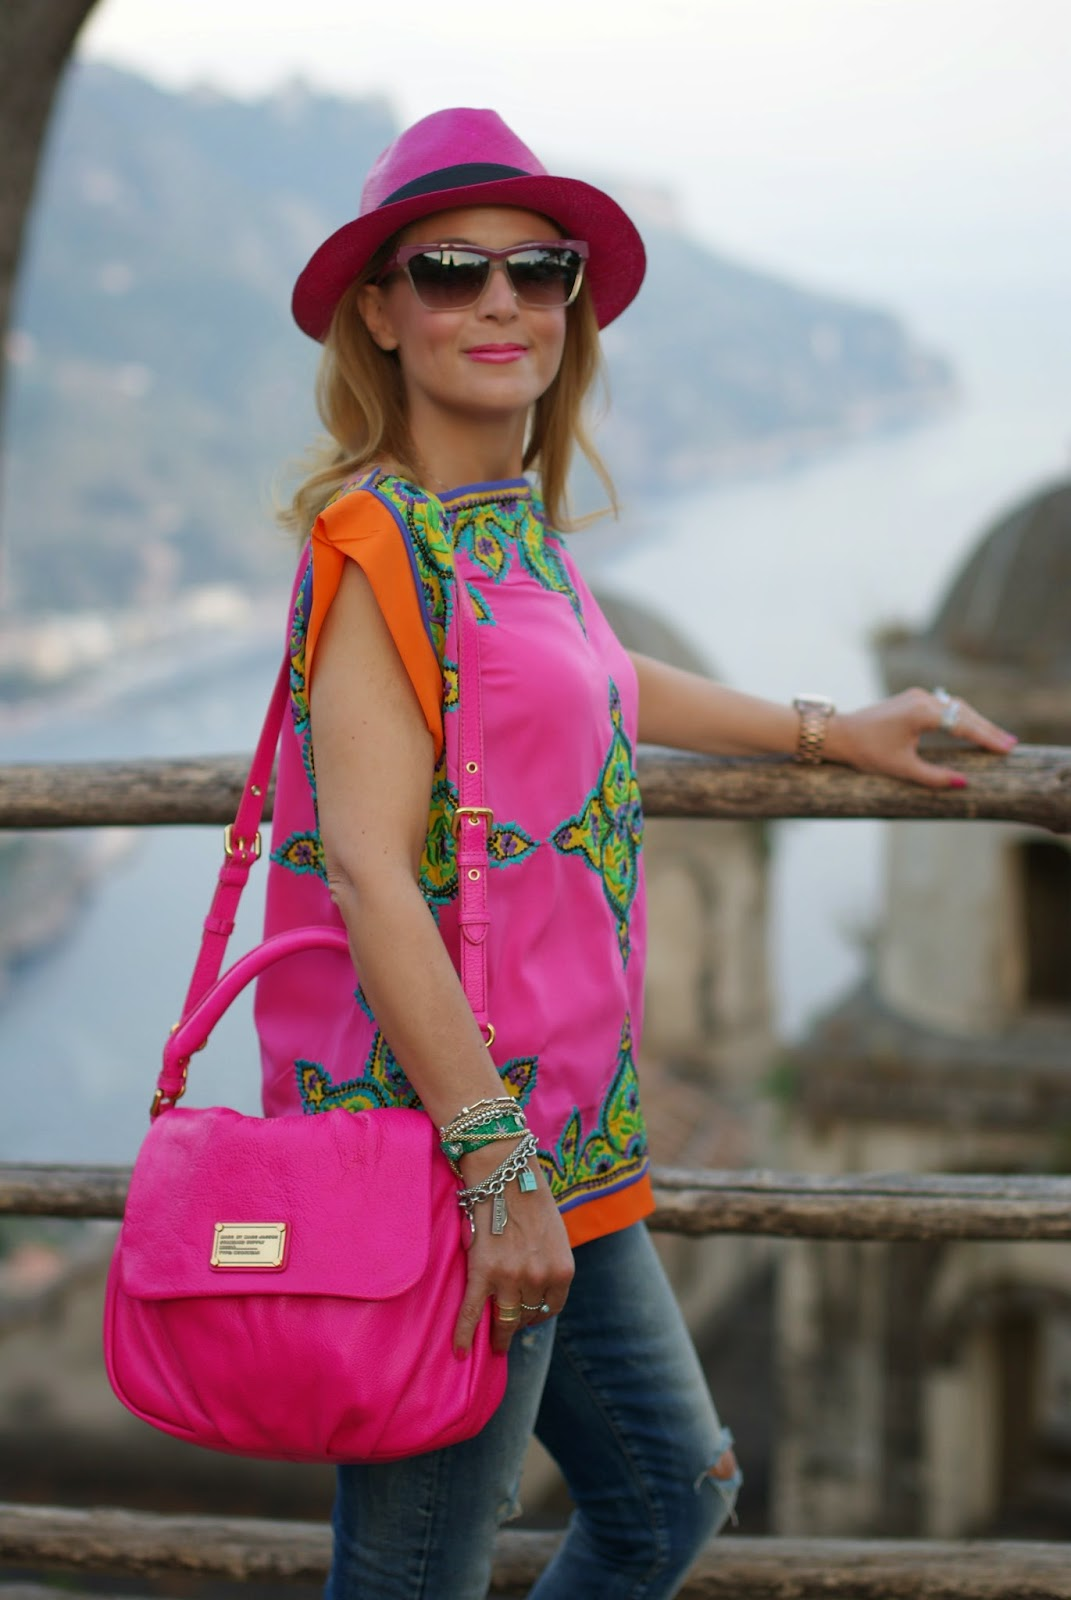 Preeti S Kapoor top, Villa Rufolo pics, Little Ukita bag, Ecua-Andino hat, Fashion and Cookies, fashion blogger